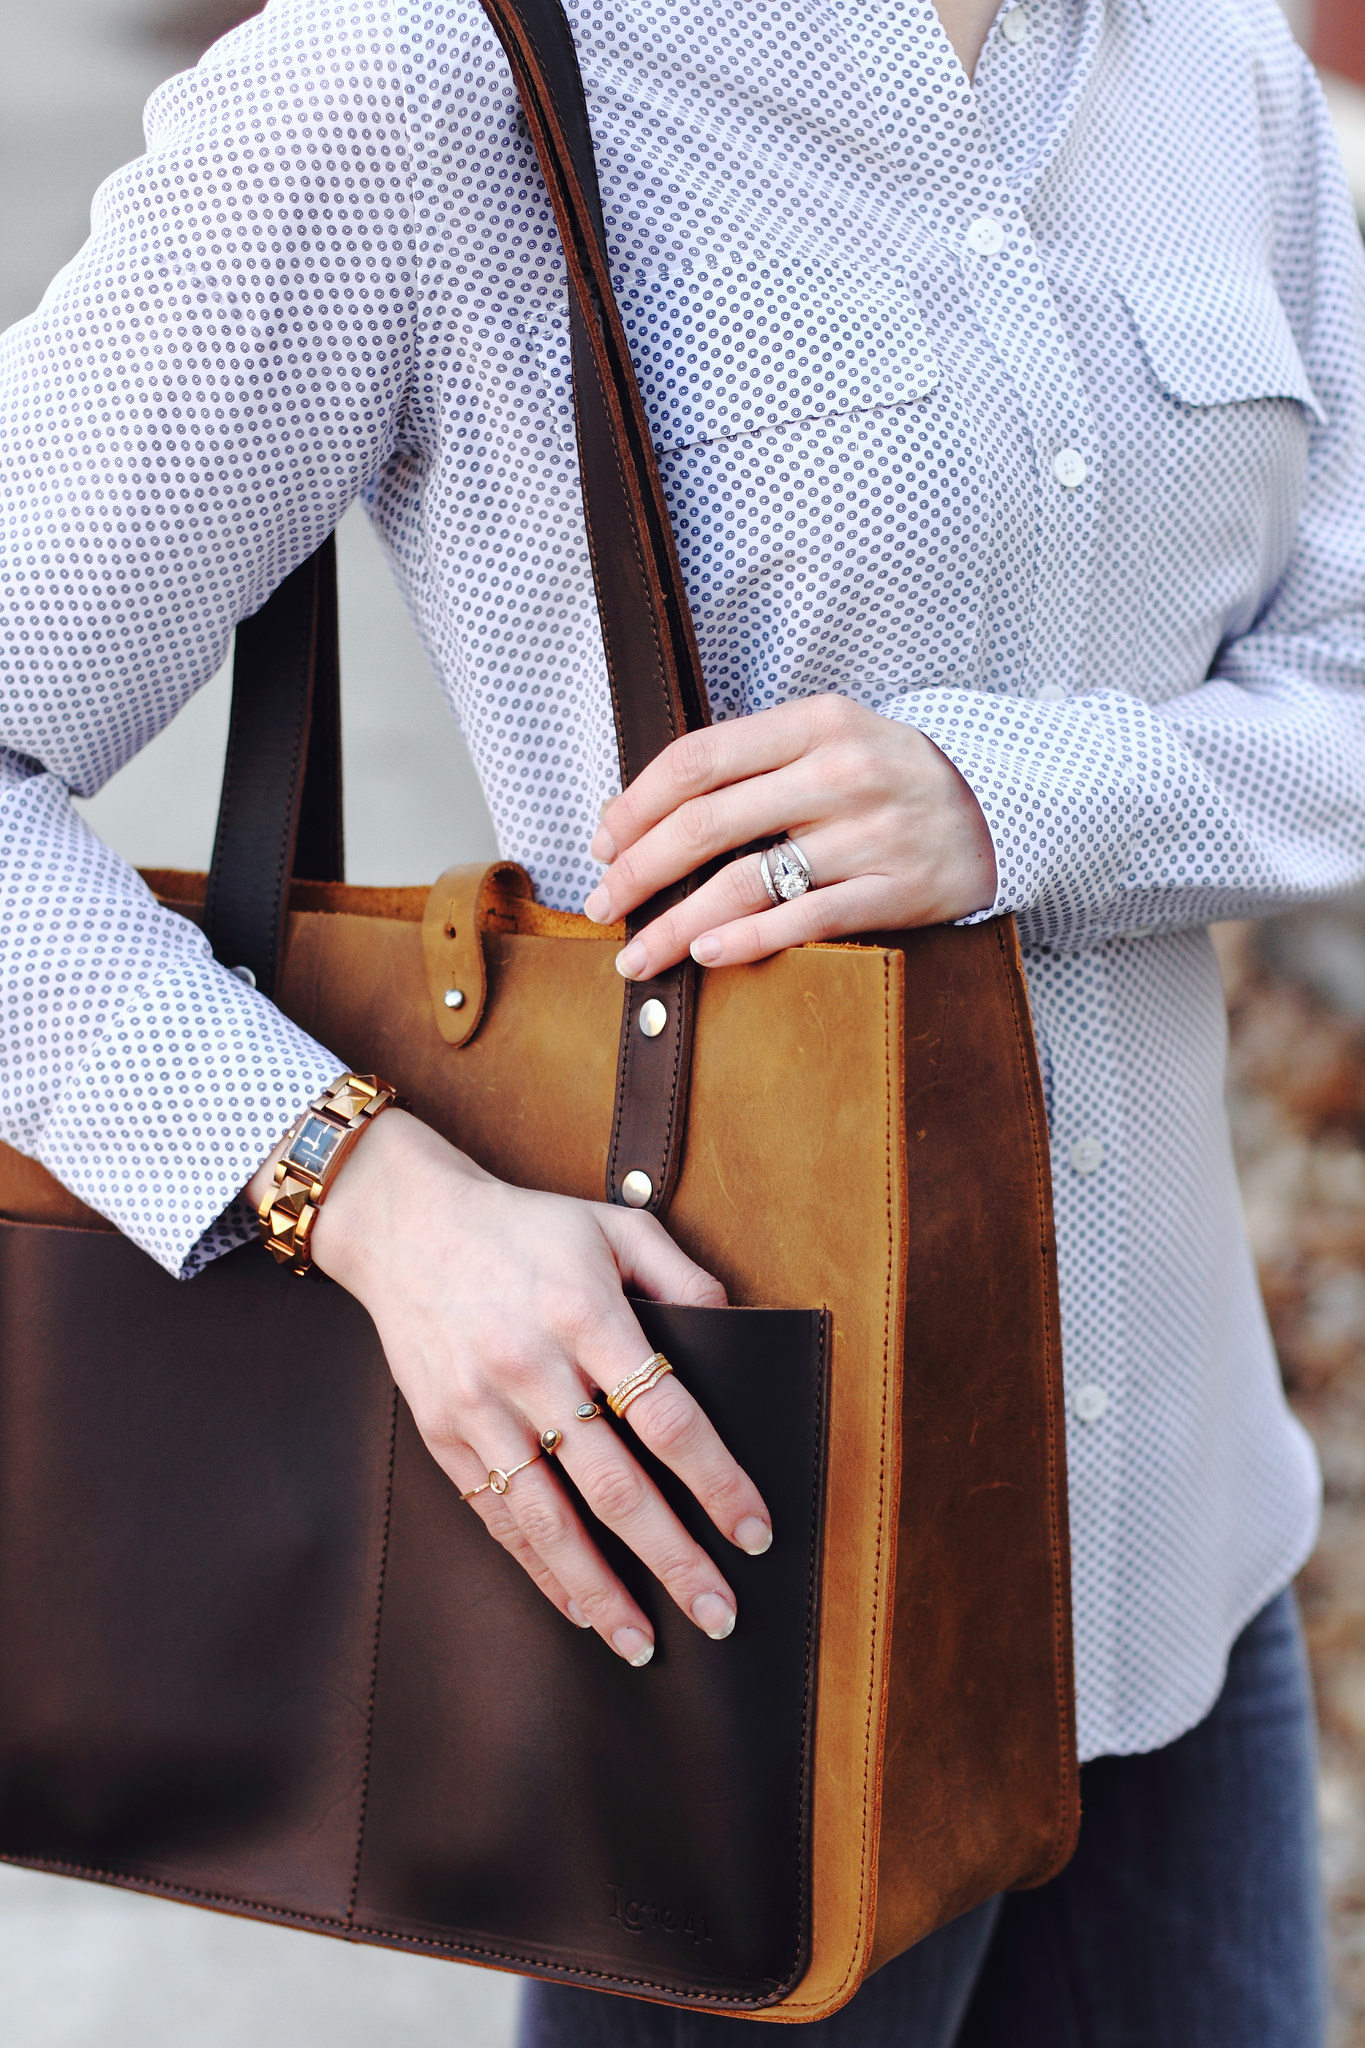 Saddleback Leather bag